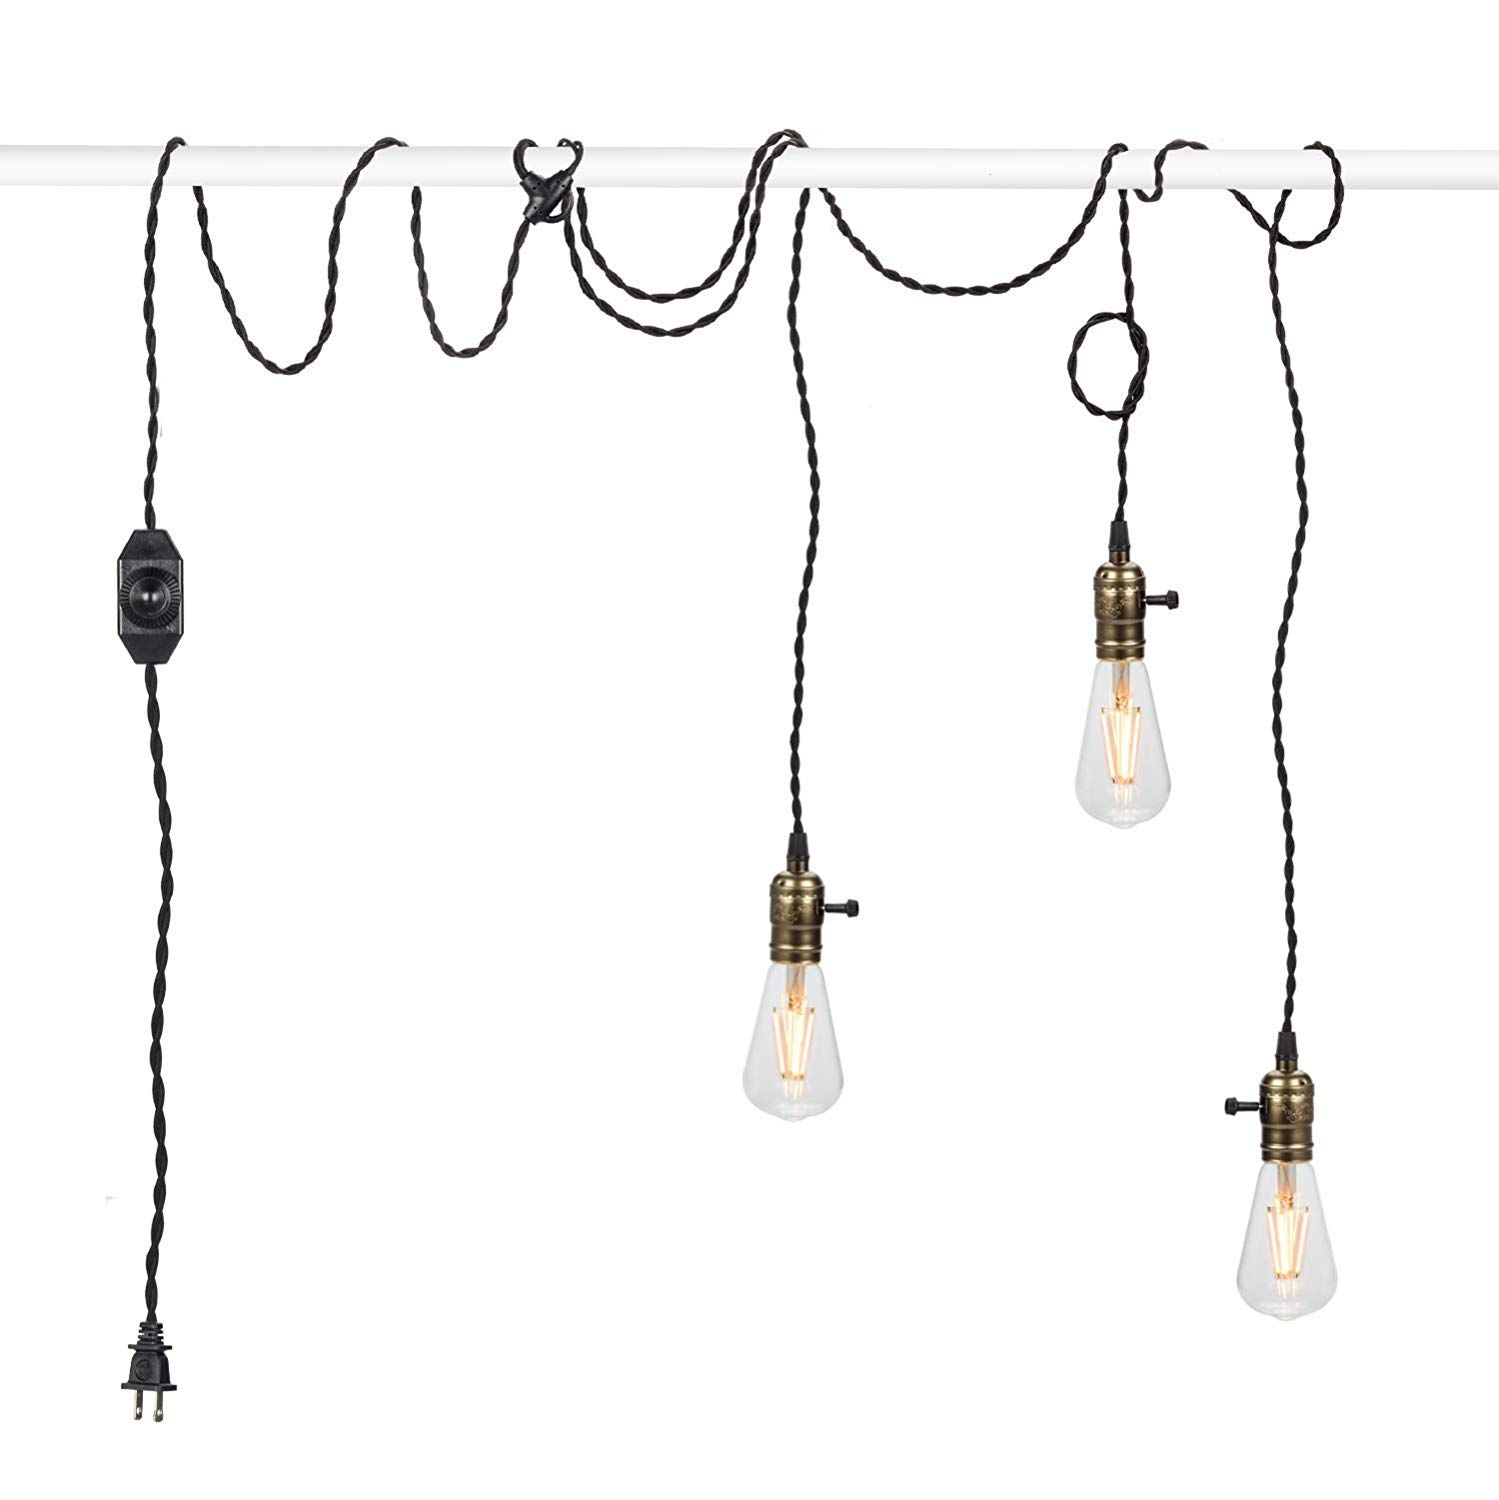 Vintage Pendant Light Kit Cord With Dimming Switch And